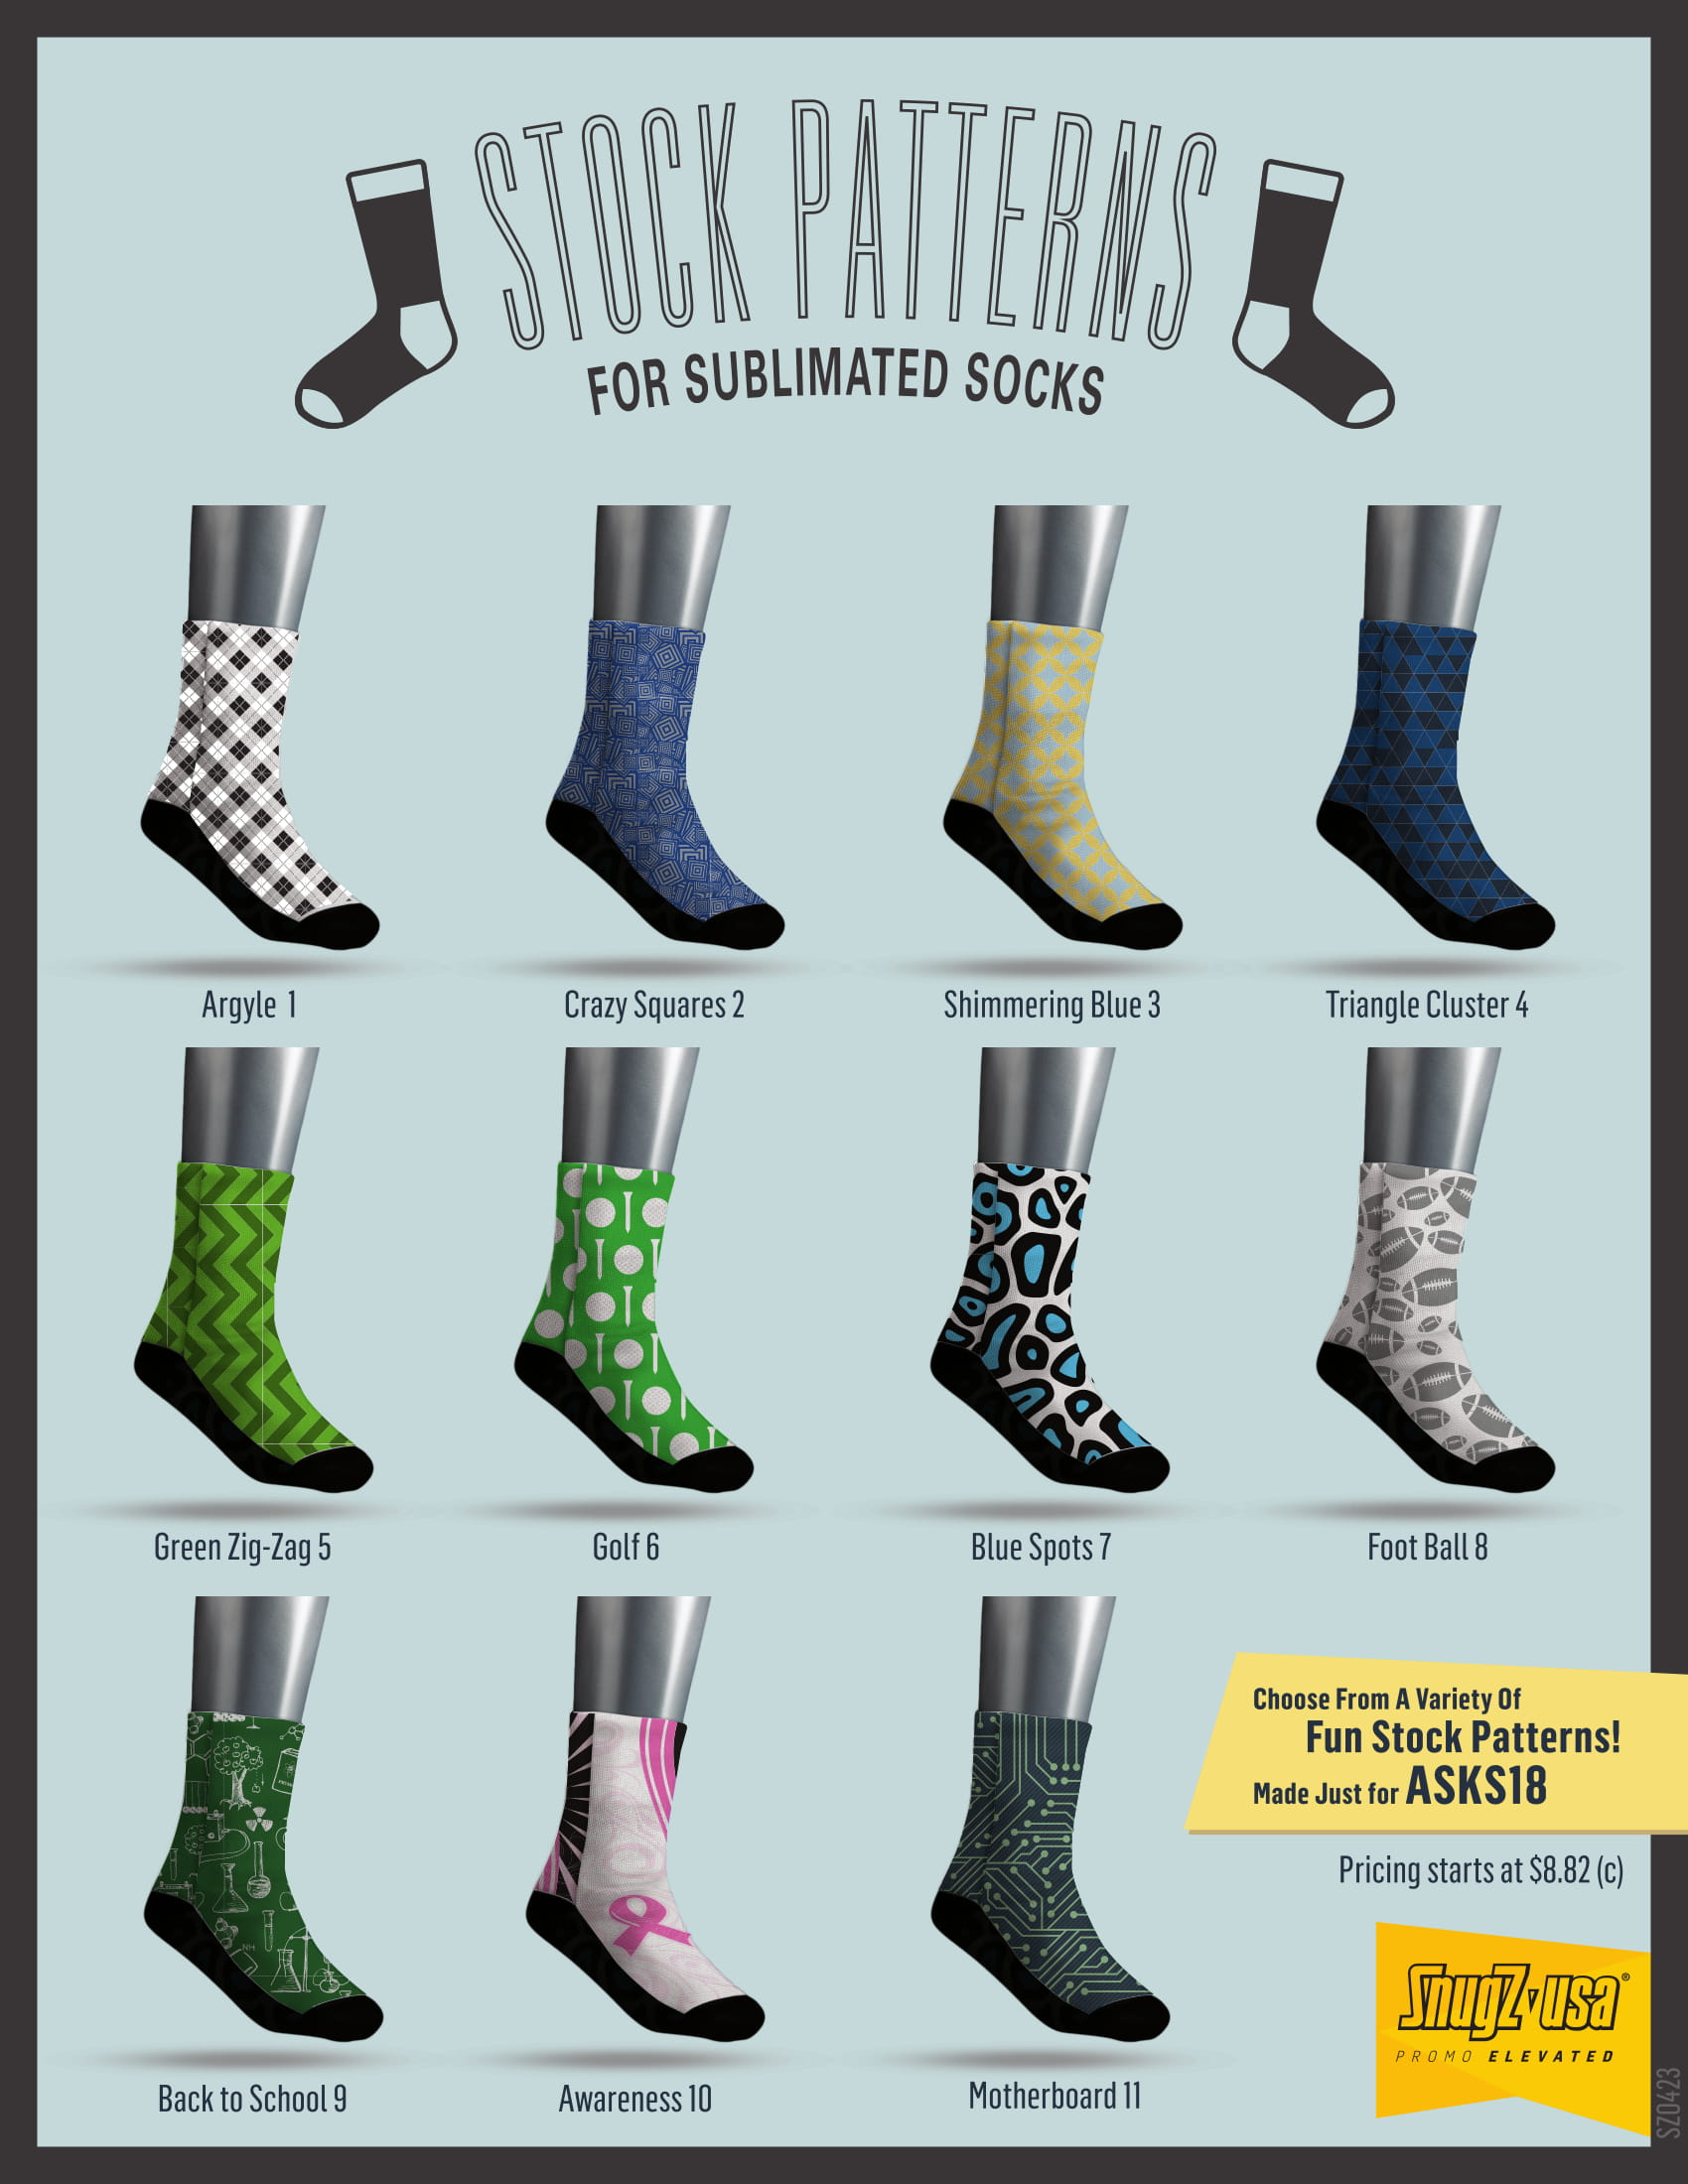 Stock Patterns For Sublimated Socks